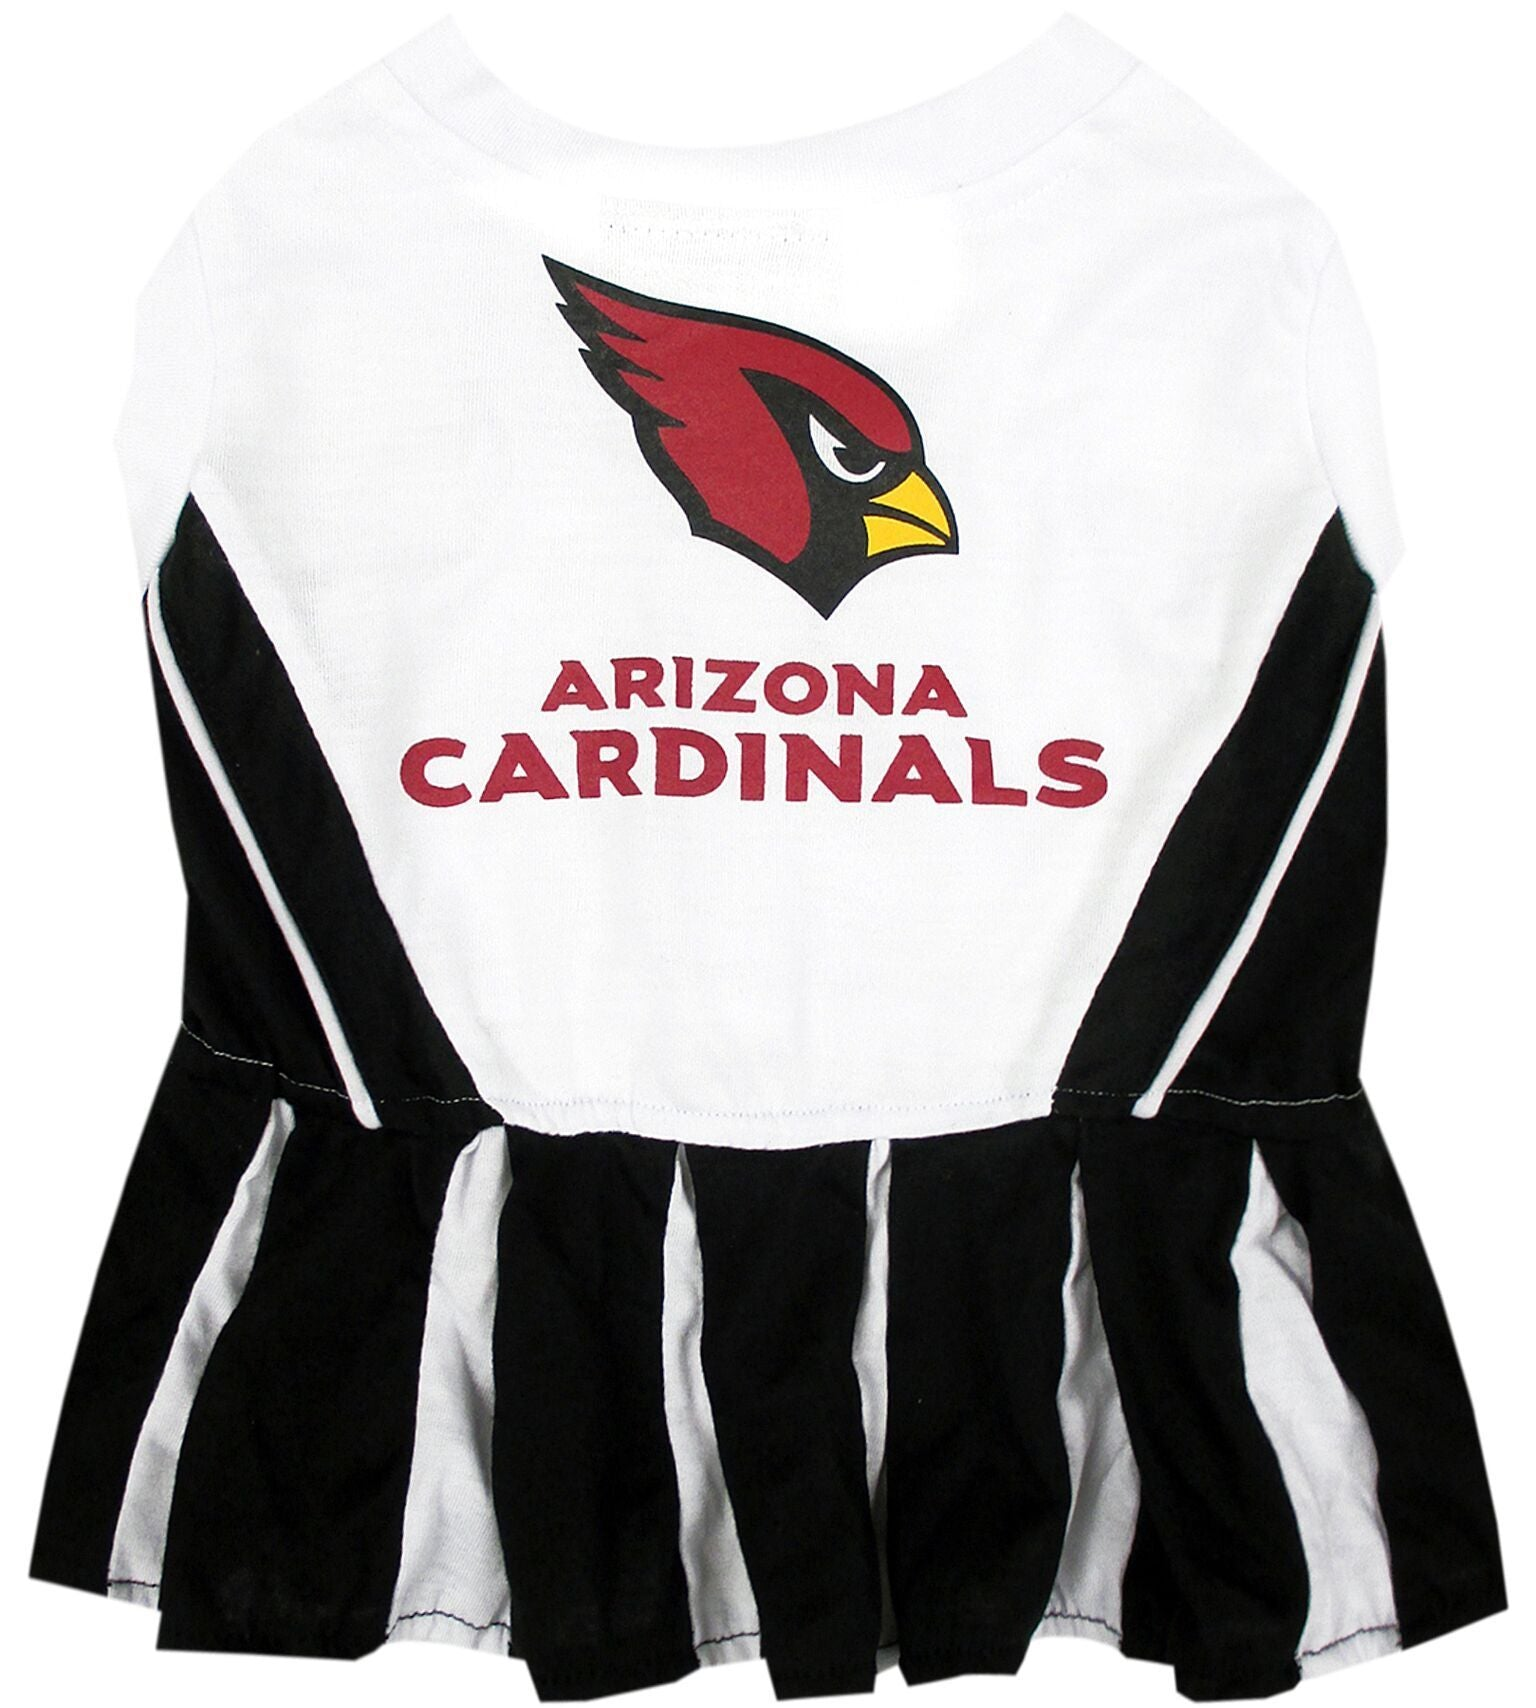 31025c971cb8 Arizona Cardinals Puppy Dog Football Jersey - Jersey Champs. Arizona  Cardinals Puppy Dog Football Jersey - Jersey Champs